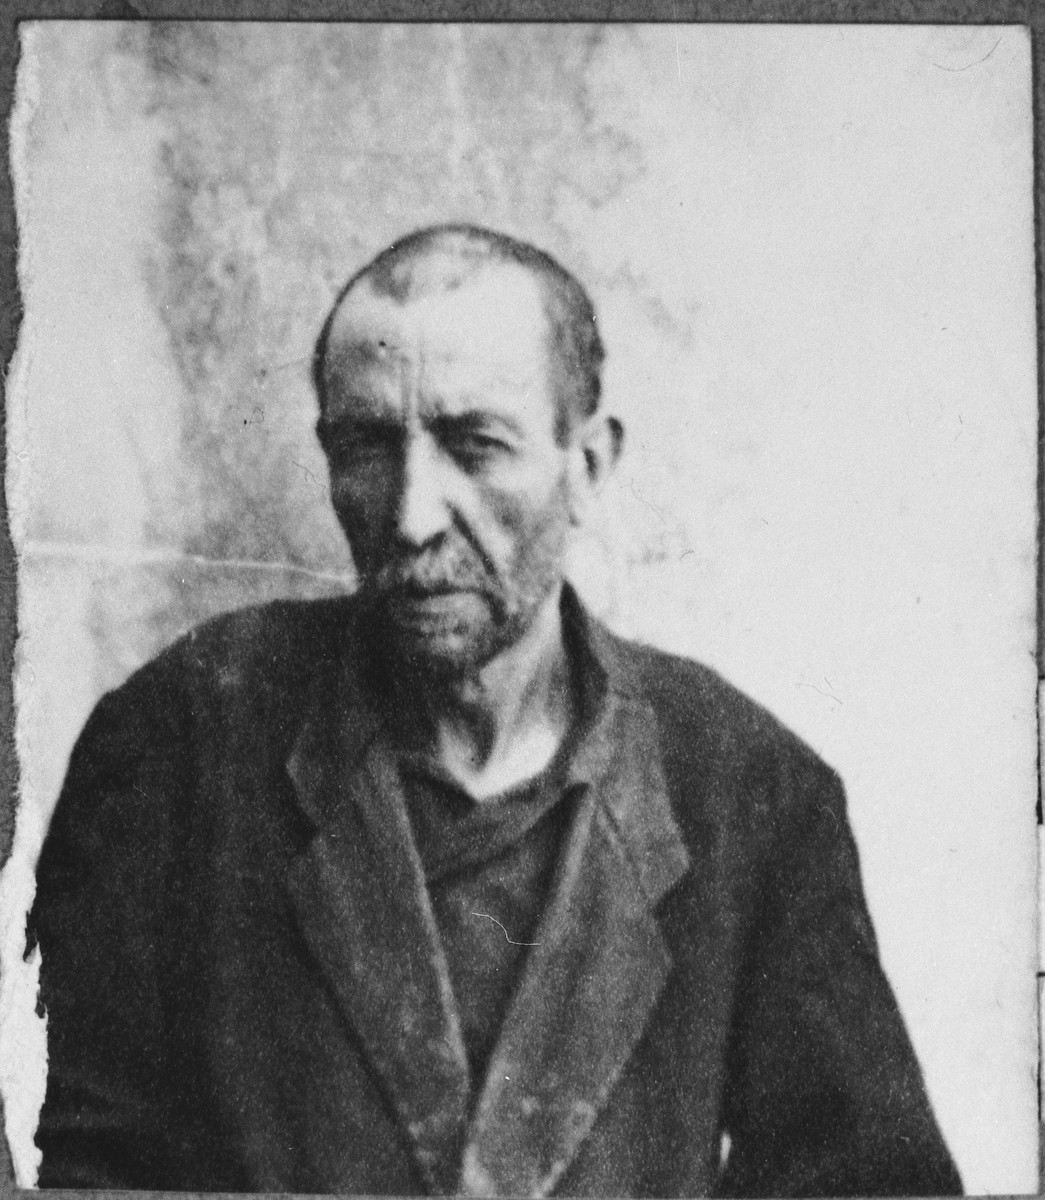 Portrait of Yakov Koen.  He was a locksmith.  He lived at Karagoryeva 47 in Bitola.